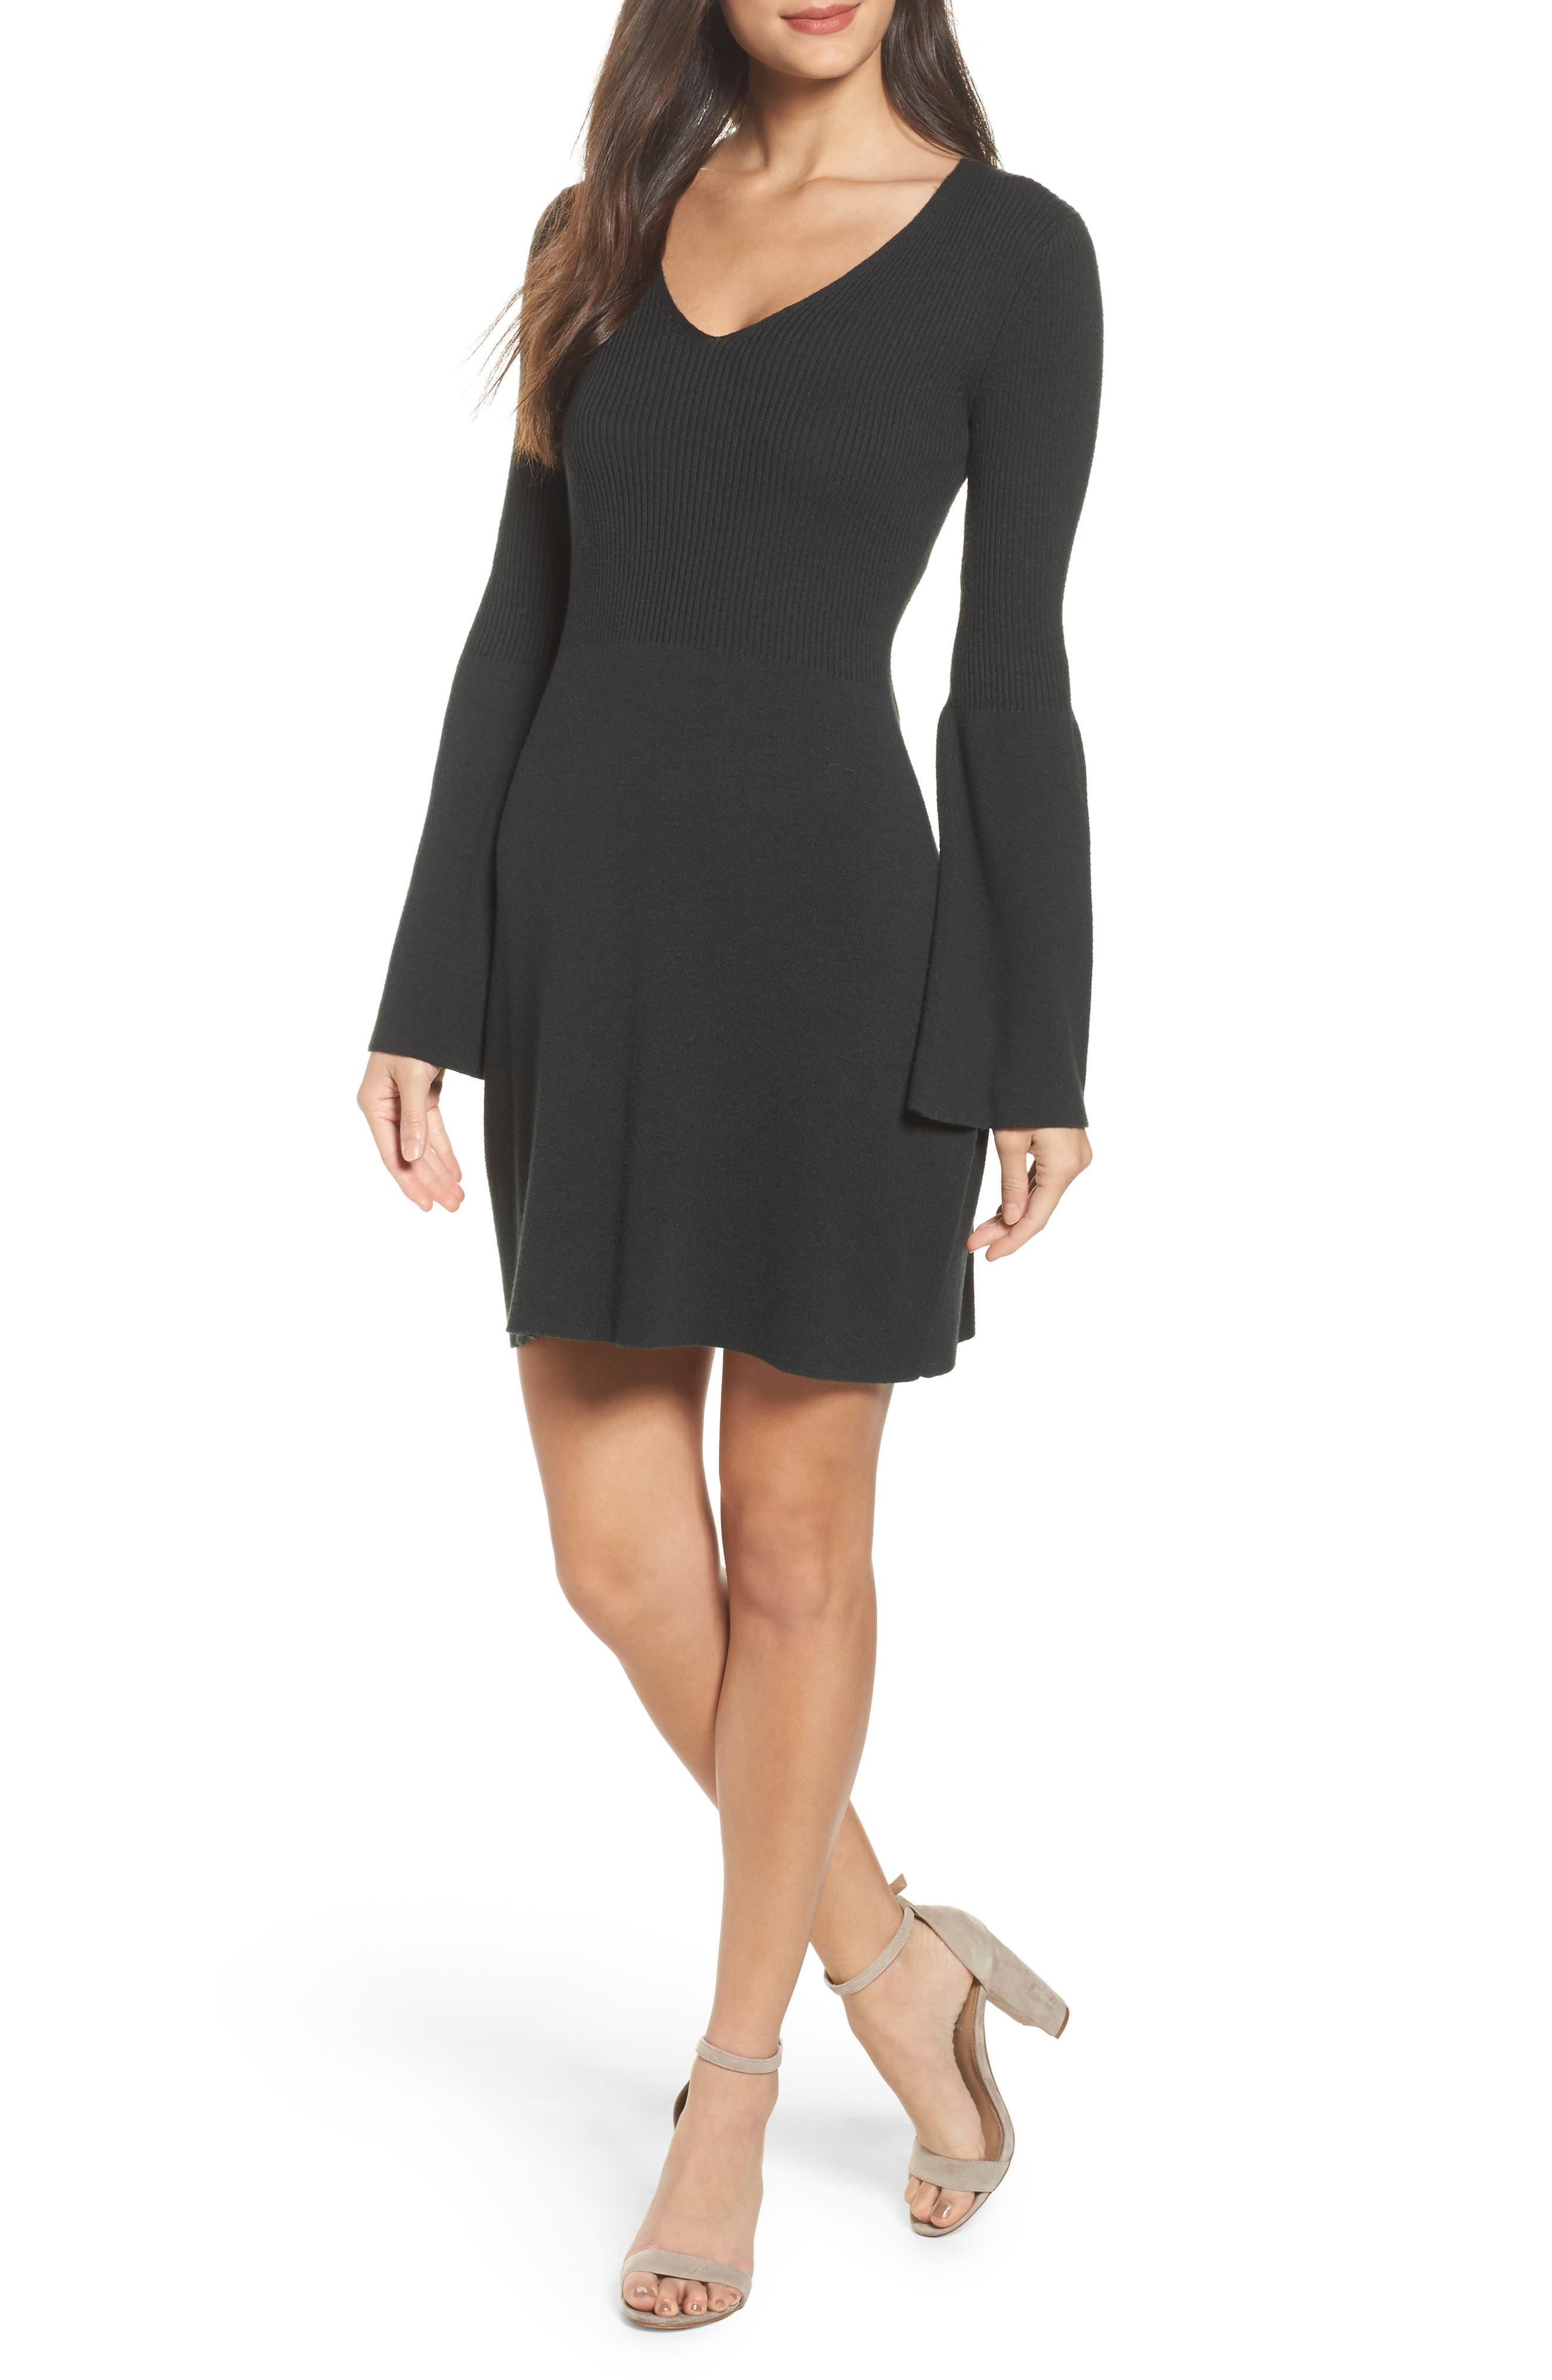 Main Image - French Connection Virgie Knits Bell Sleeve Dress